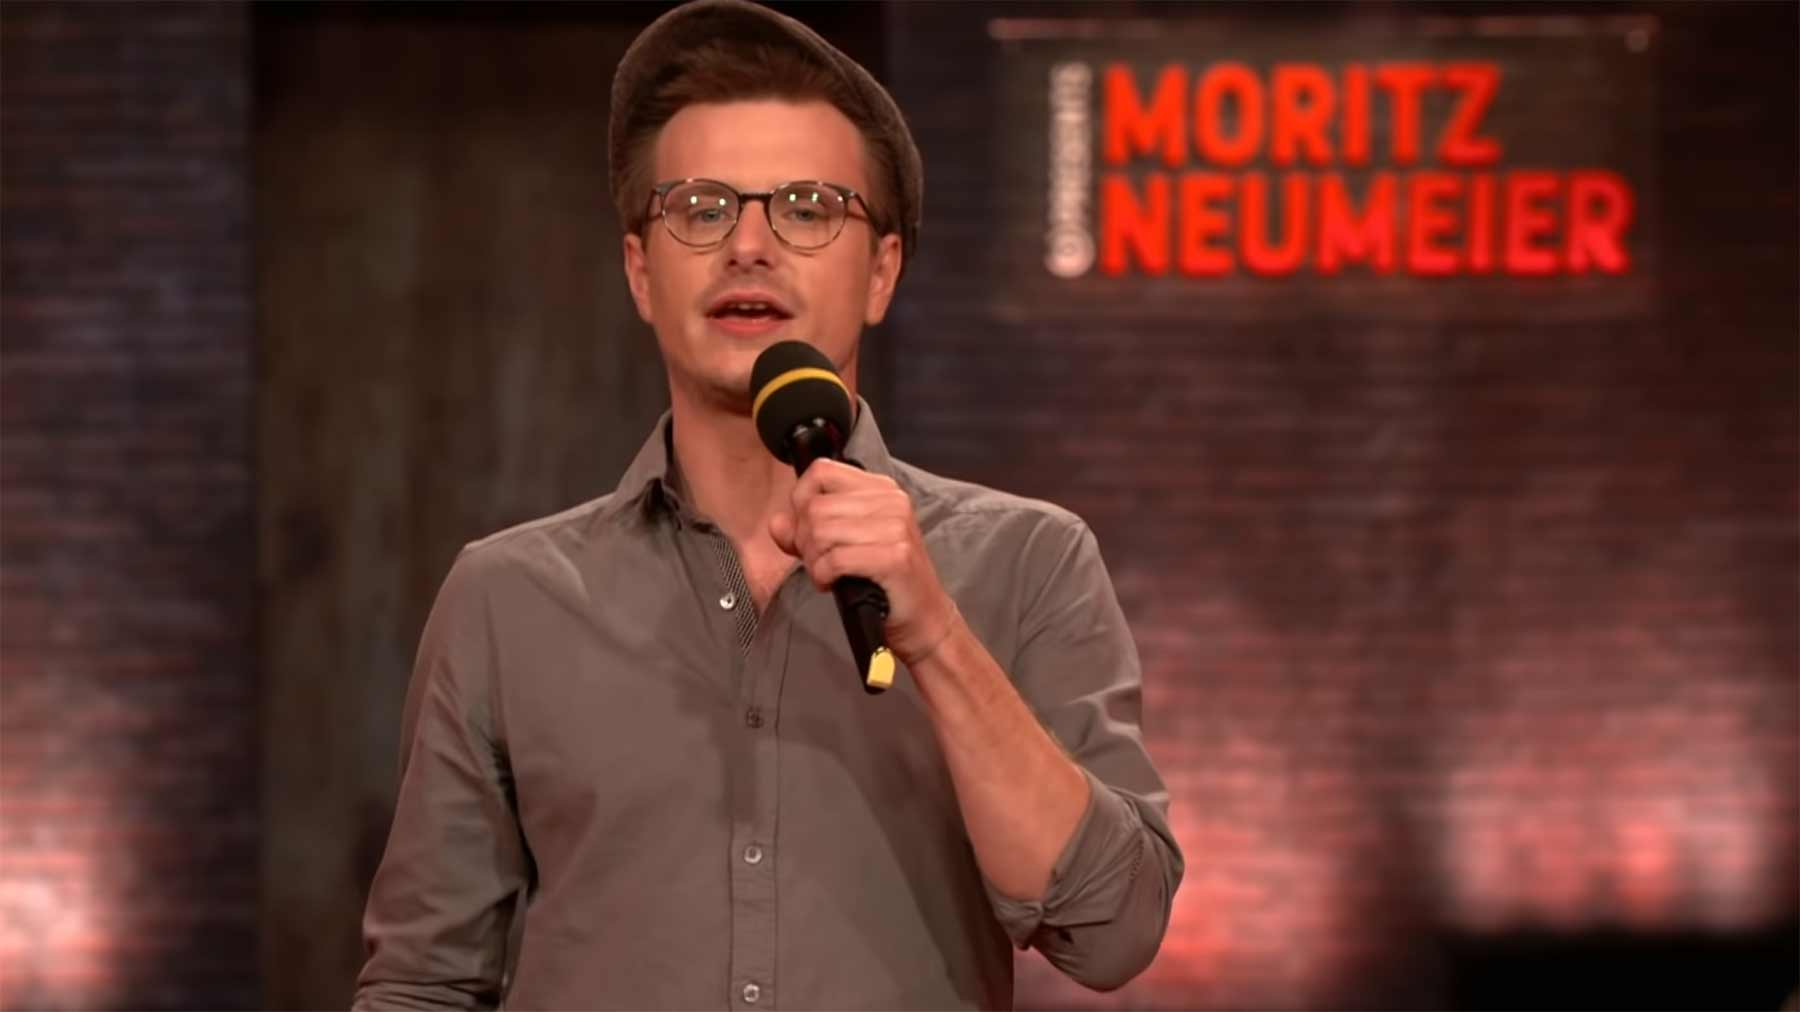 Neue Stand-up-Comedy von Moritz Neumeier Moritz-Neumeier-comedy-central-stand-up-2020